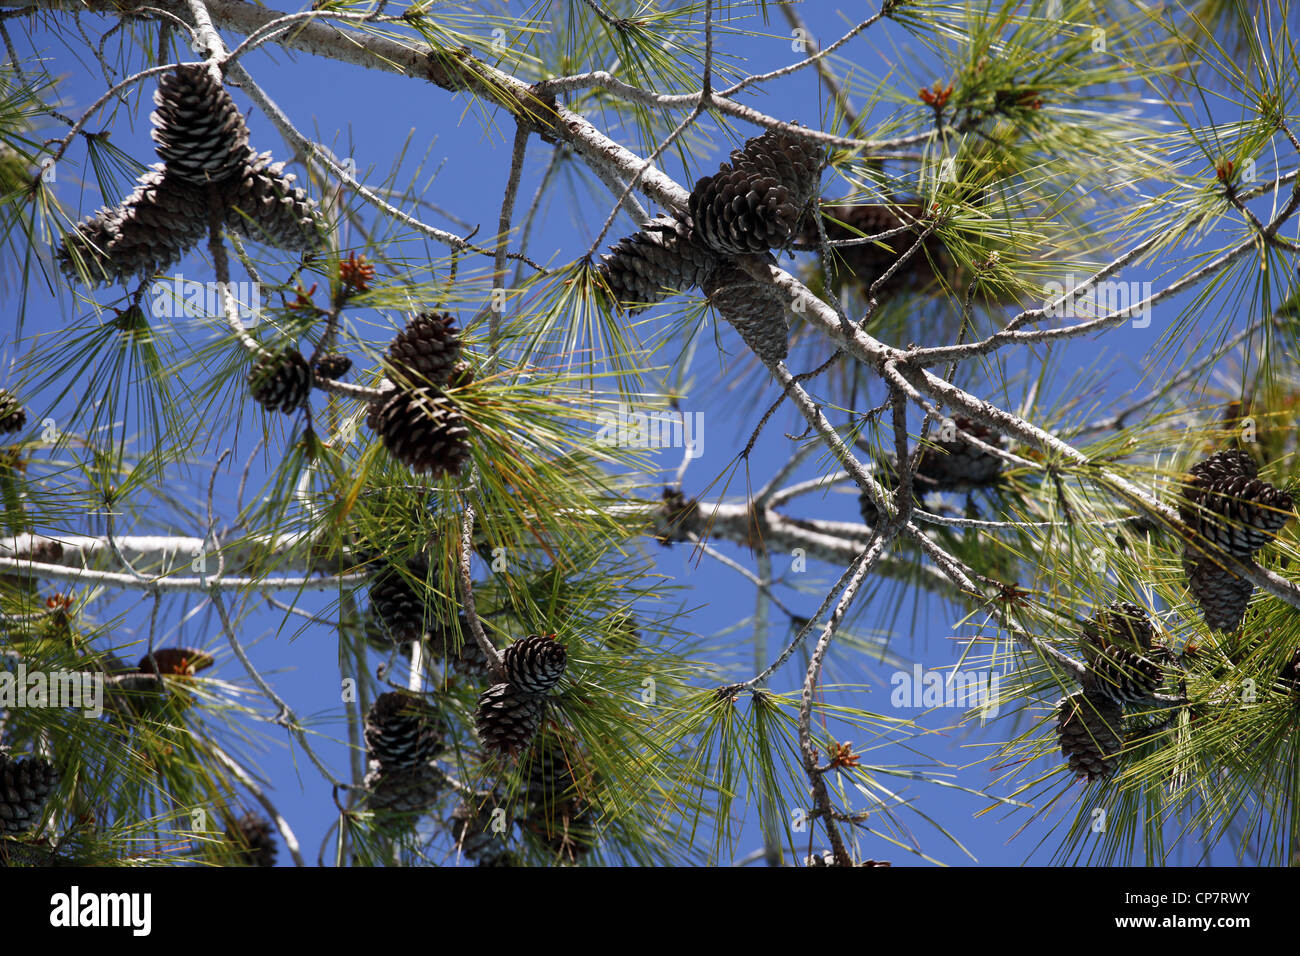 TREE WITH PINE CONES SIDE TURKEY 15 April 2012 - Stock Image